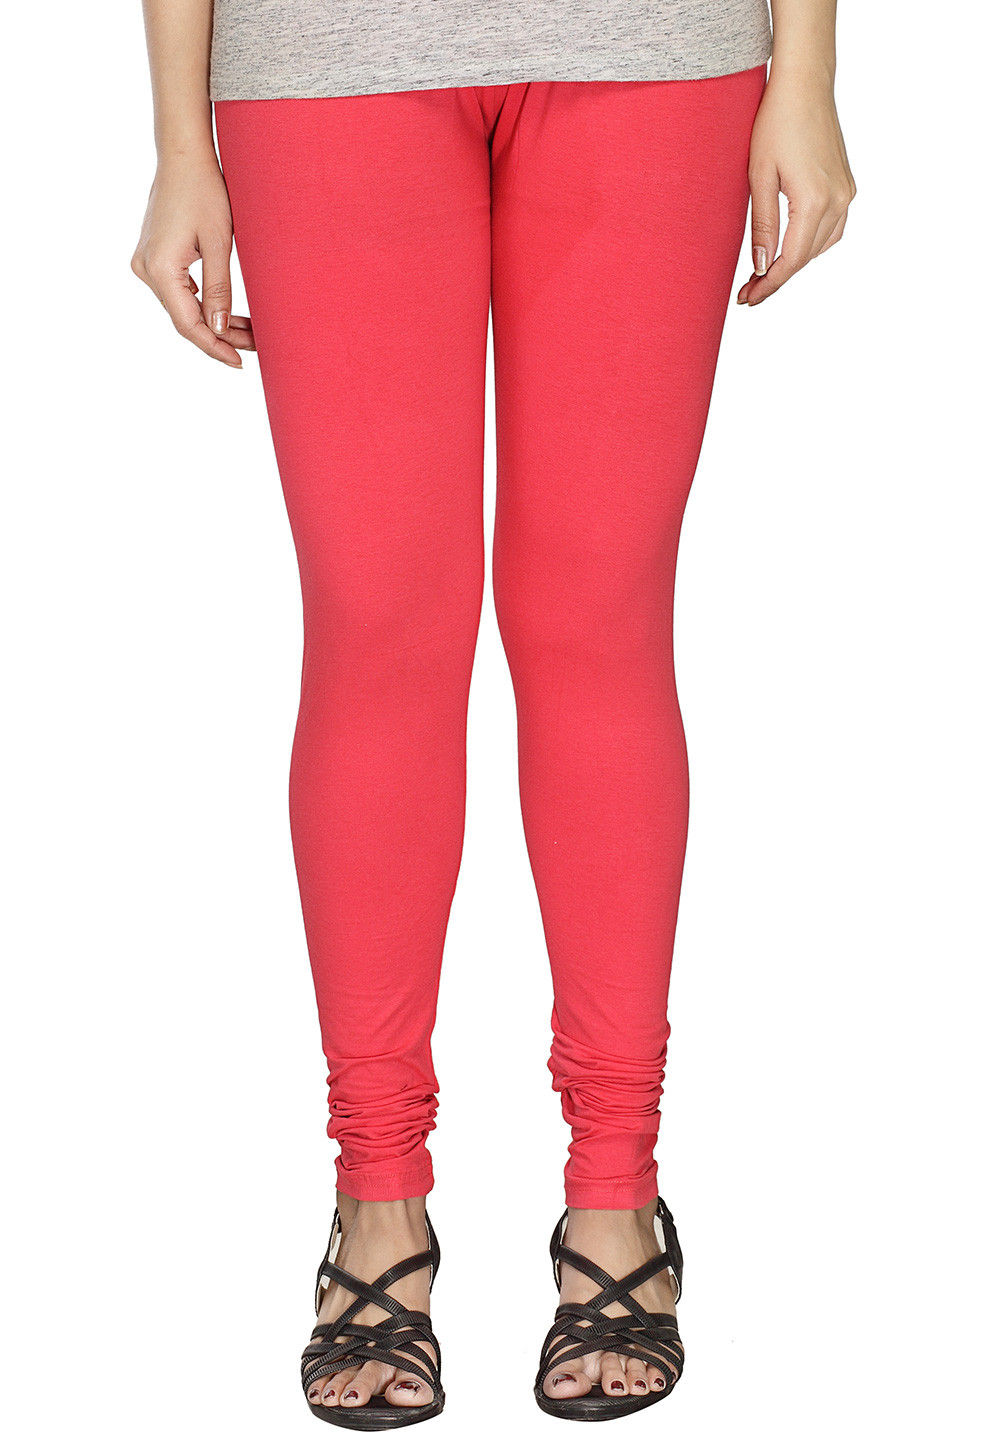 a9bf12d0471cd3 ... Solid Color Cotton Lycra Leggings in Coral Pink. Zoom